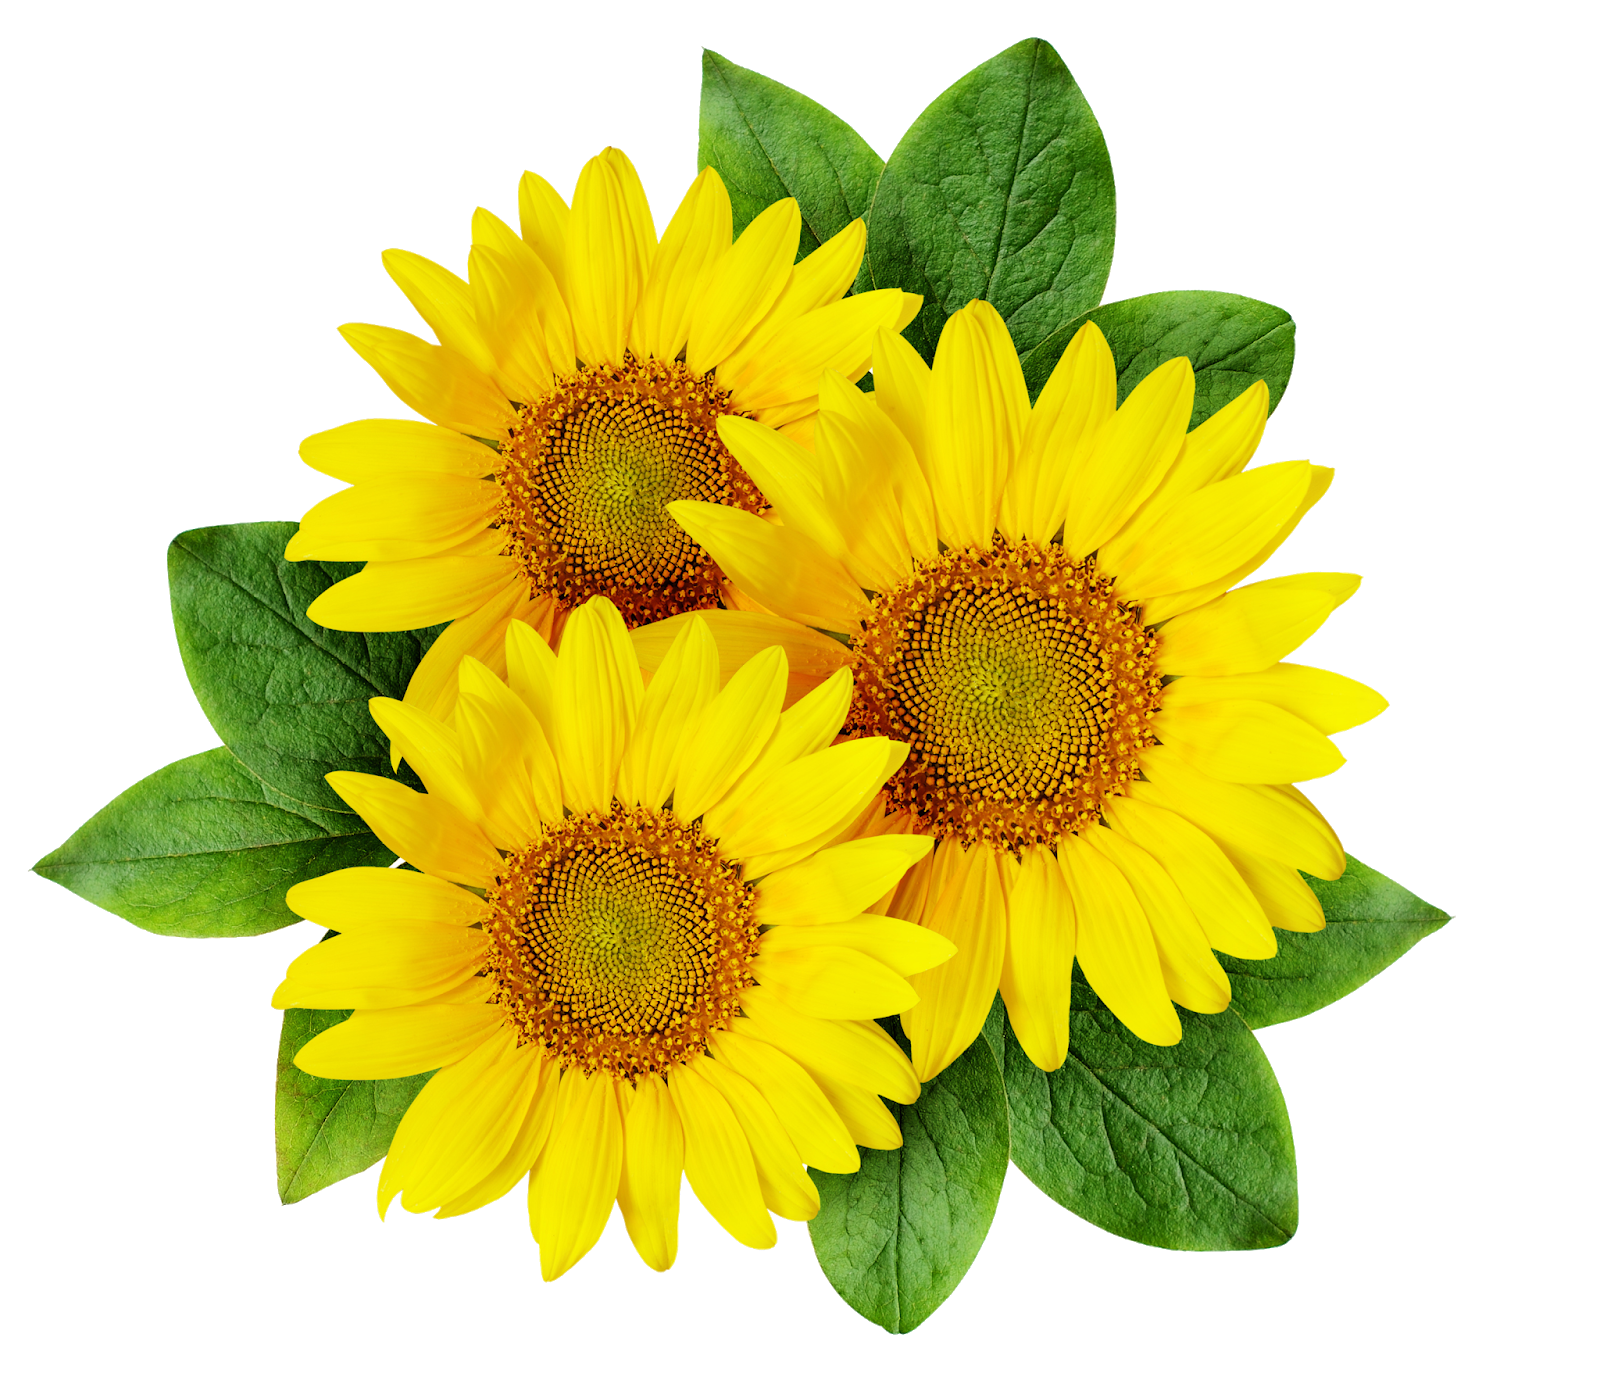 Sunflower Drawing Pictures   Free download on ClipArtMag